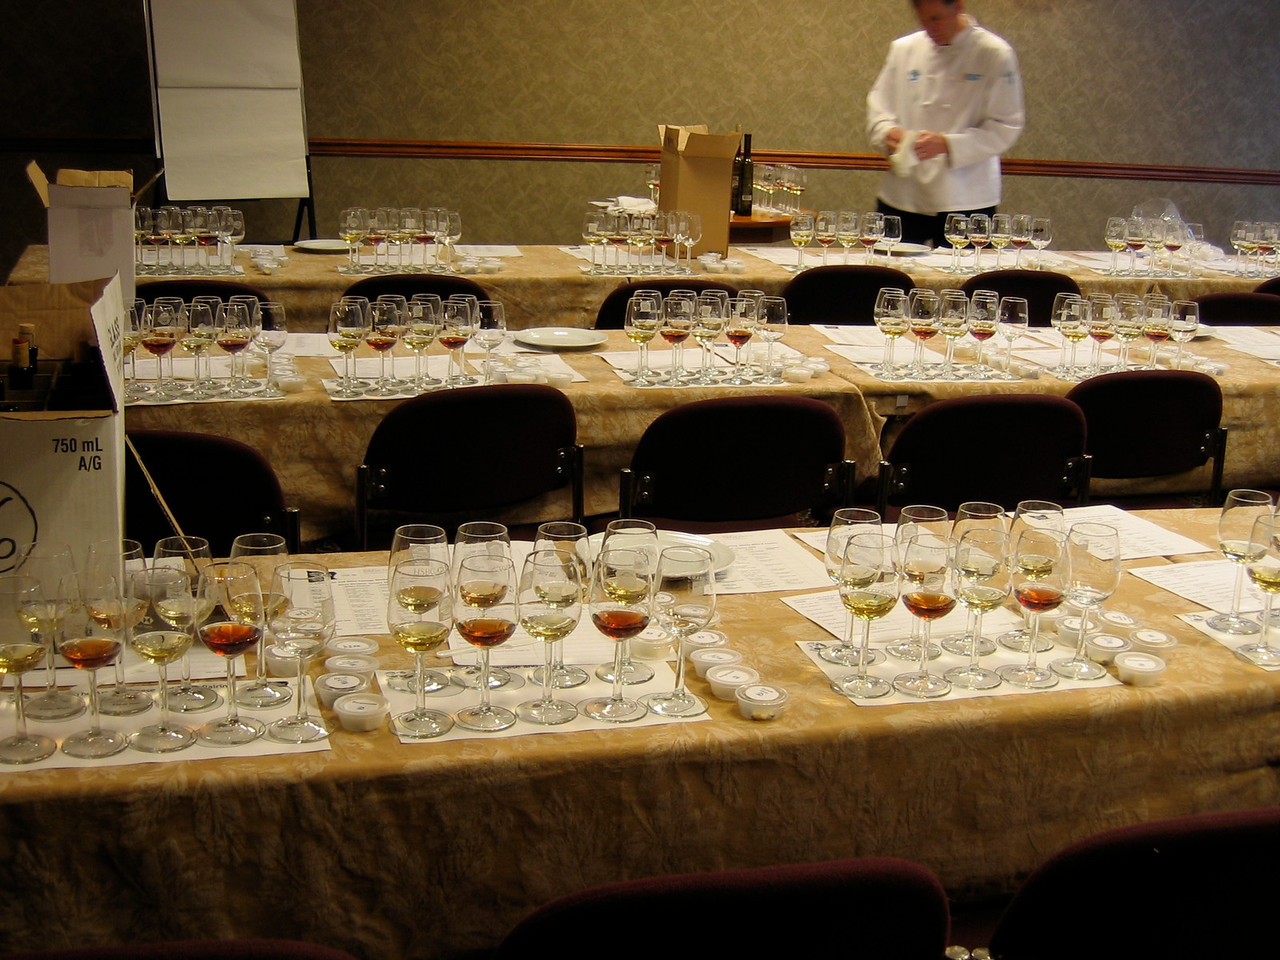 Each day there are different seminars that include not only wines, but also cheese, chocolates and other wine related foods.